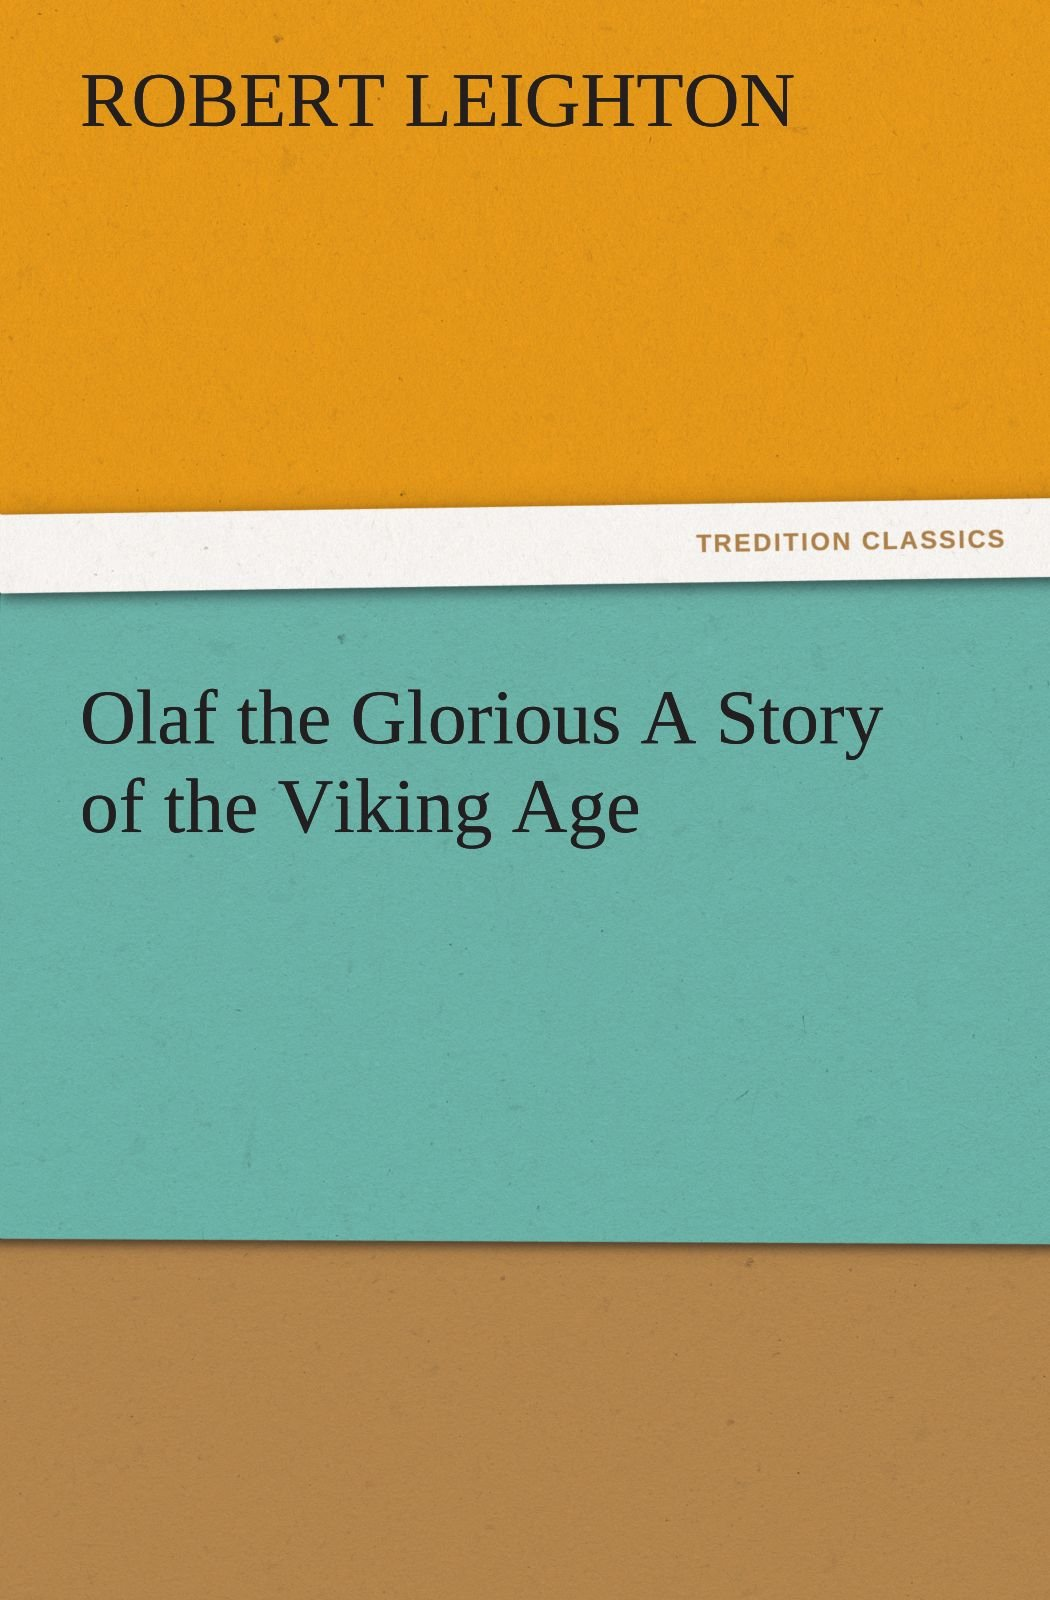 Olaf the Glorious A Story of the Viking Age (TREDITION CLASSICS) PDF